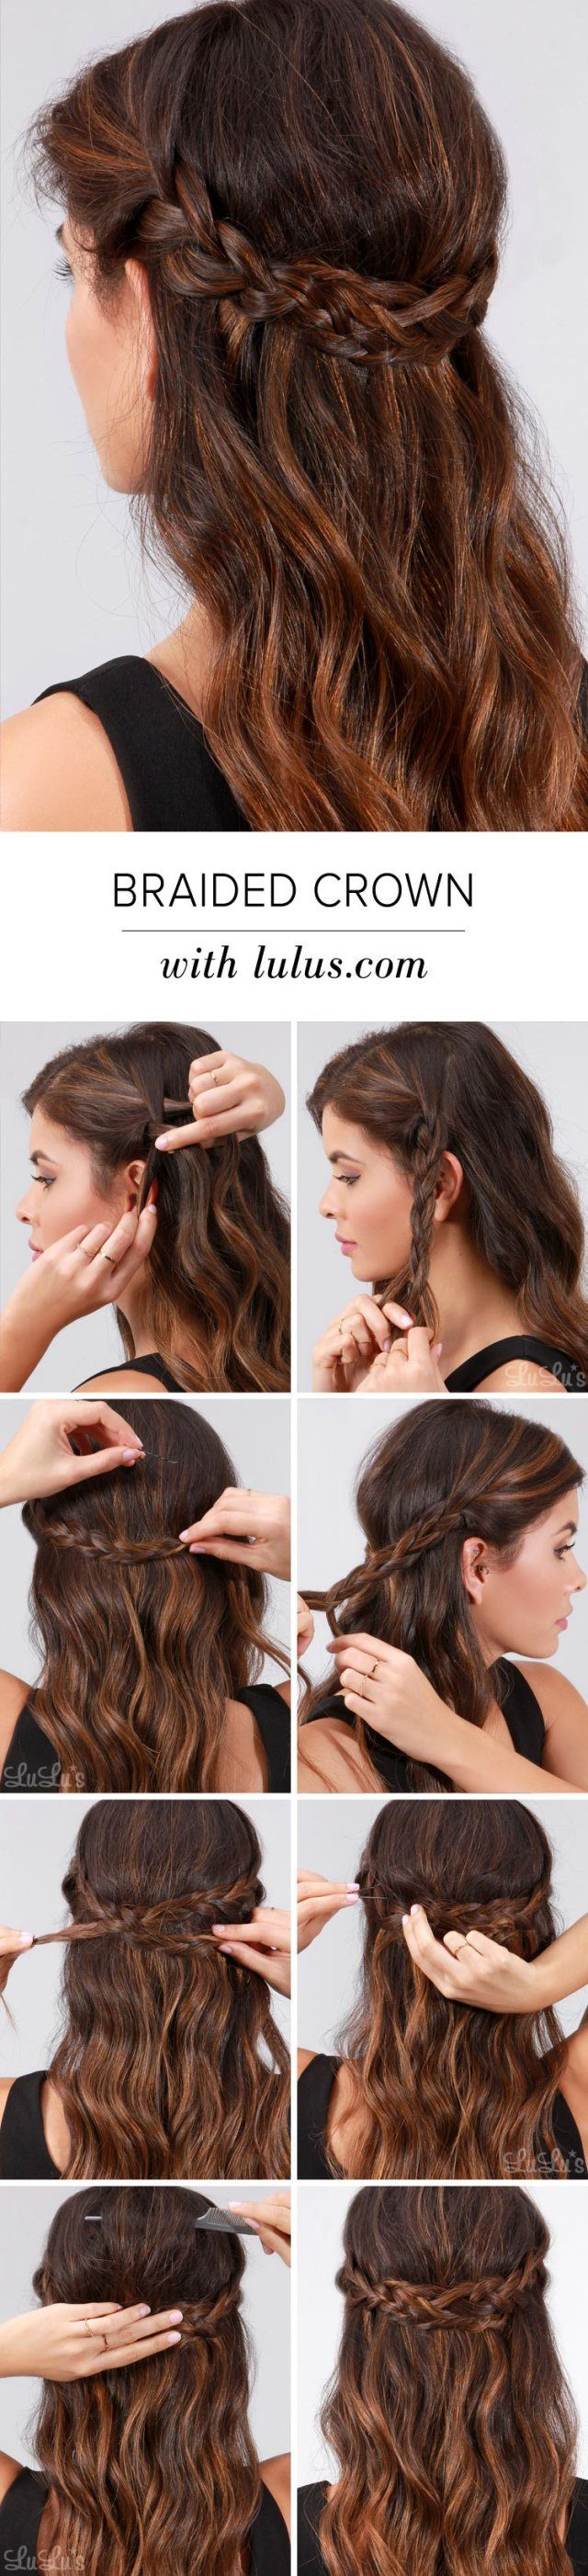 best hair styling images on pinterest hairstyles braids and hair